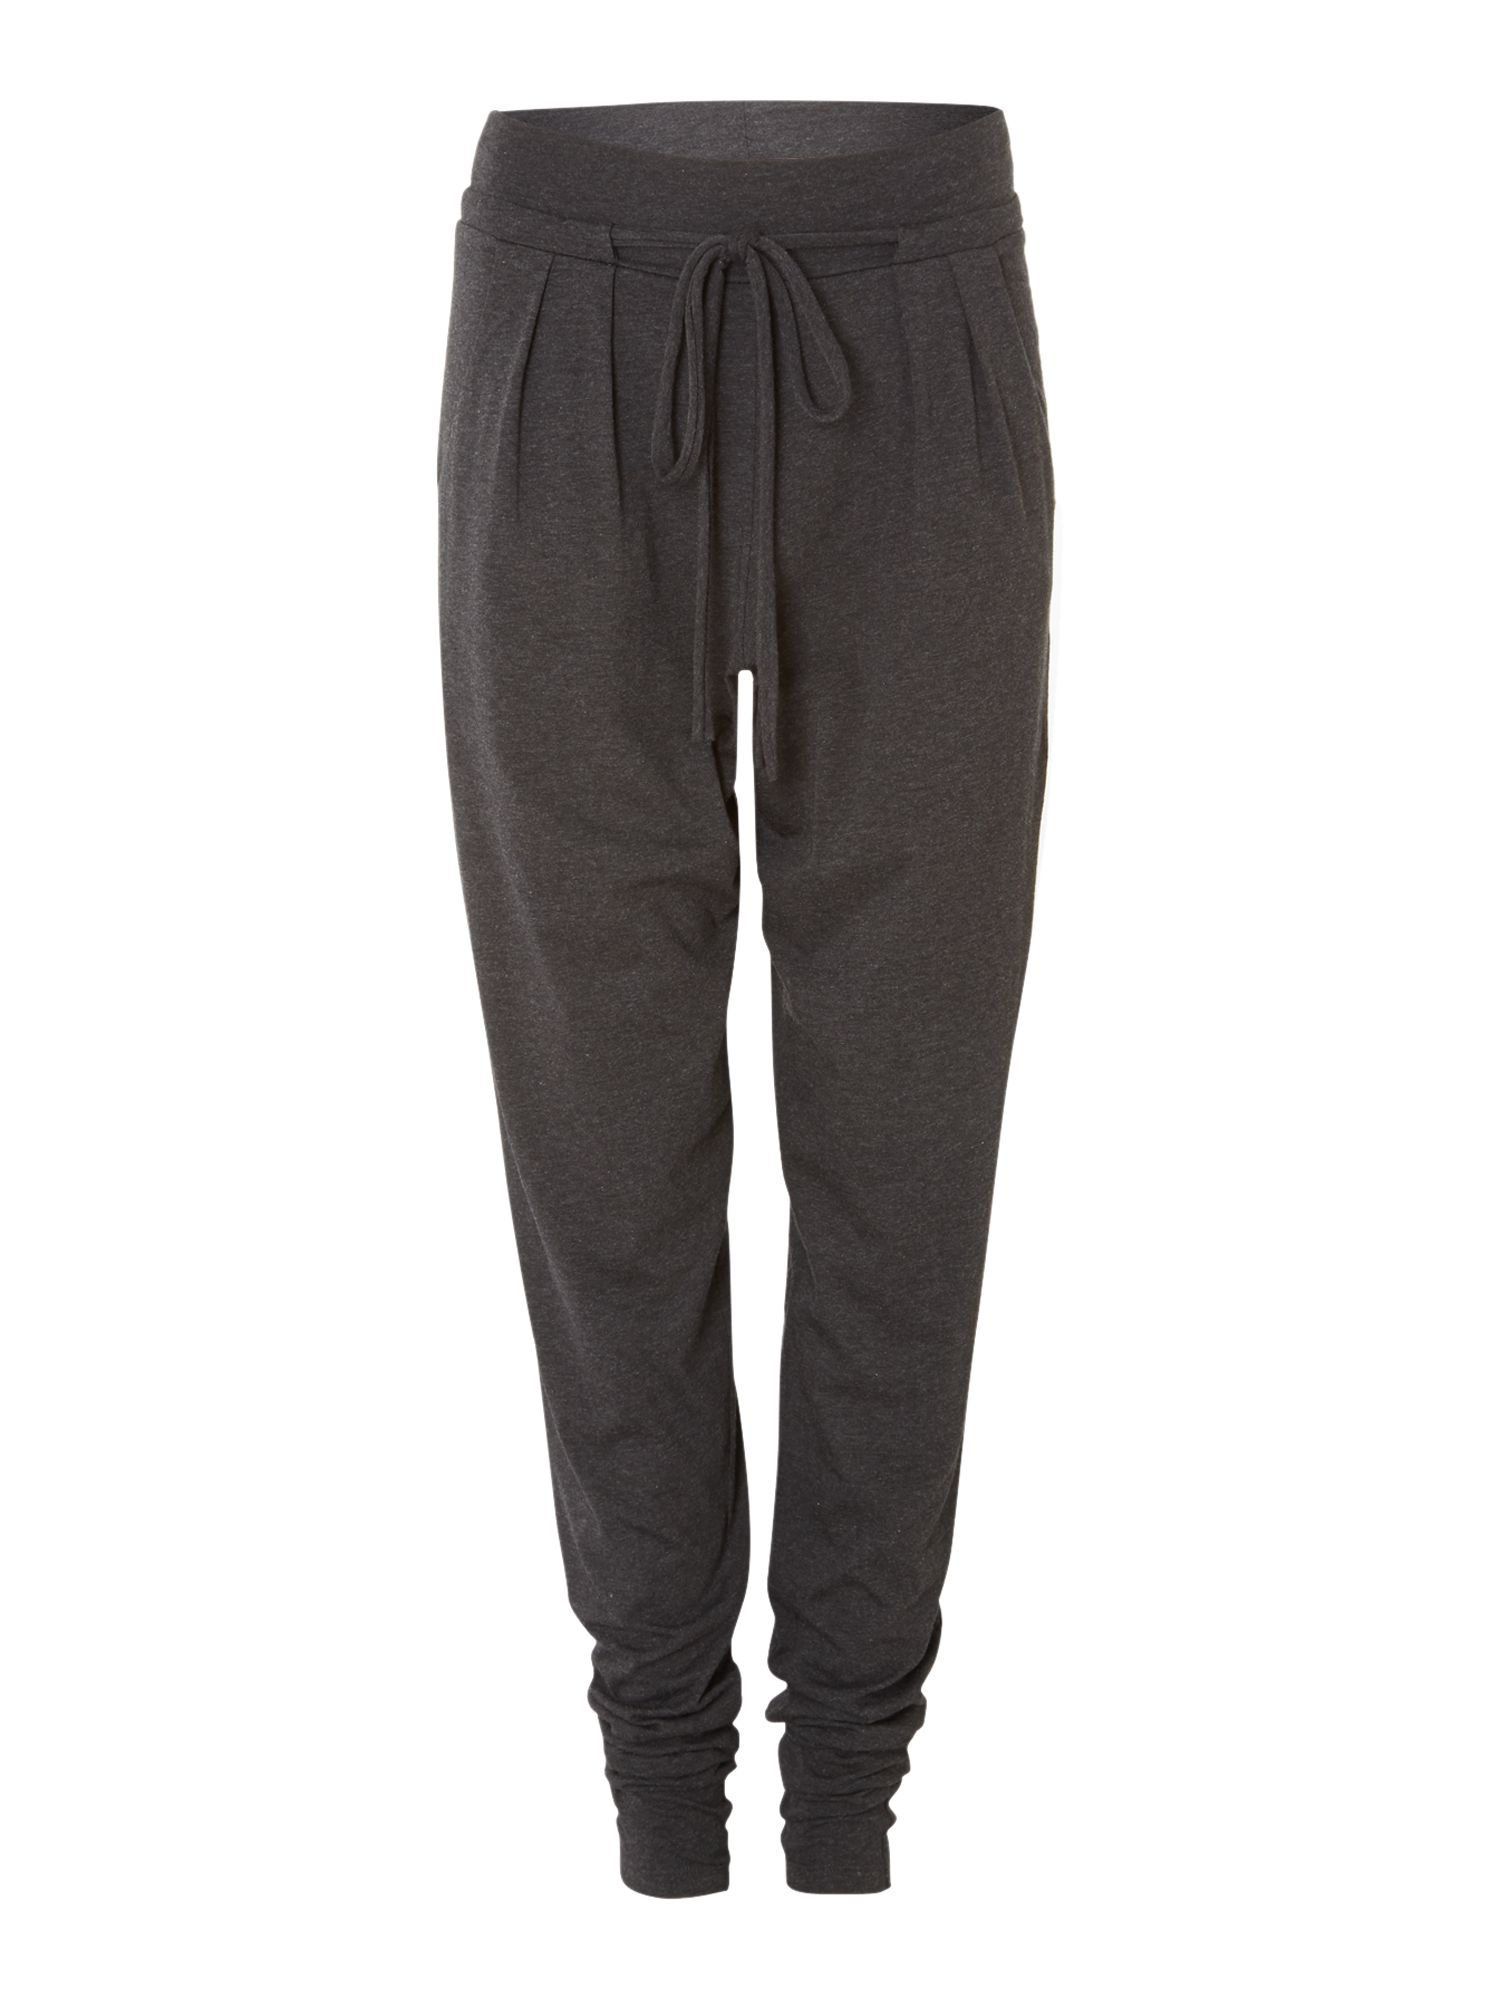 Relaxed fit jersey trousers